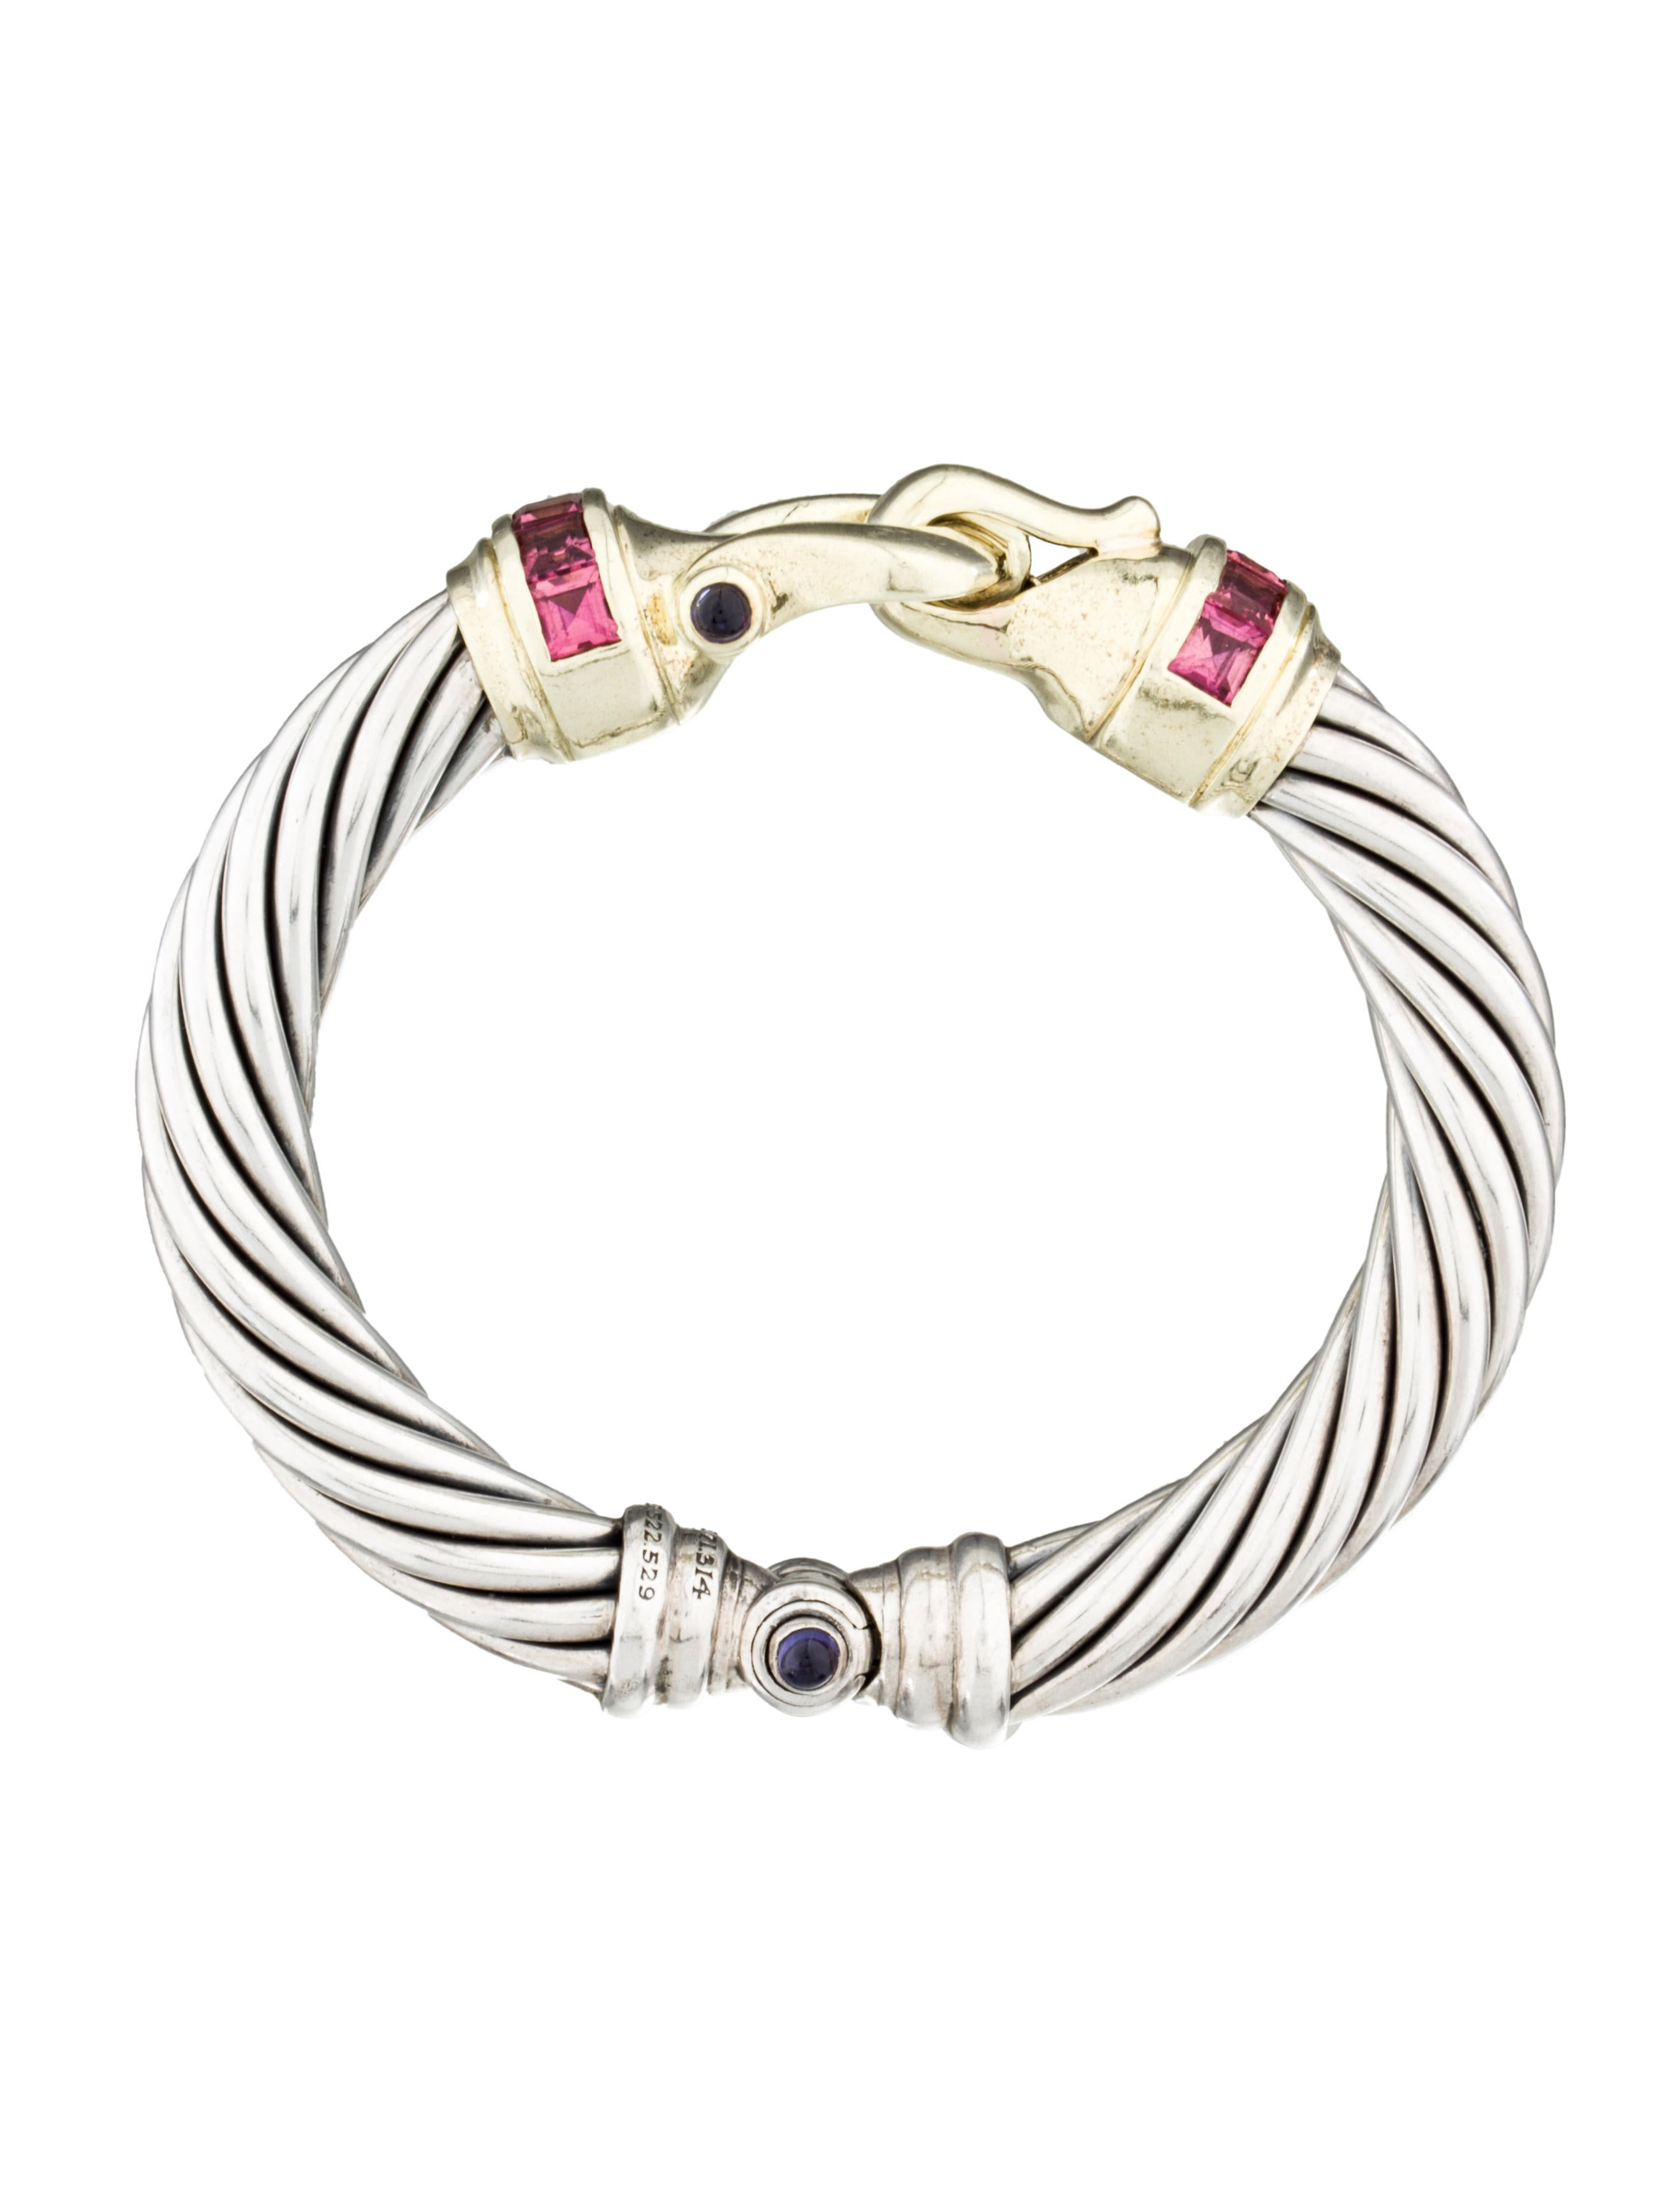 David yurman tourmaline buckle bracelet bracelets for David yurman inspired bracelet cable